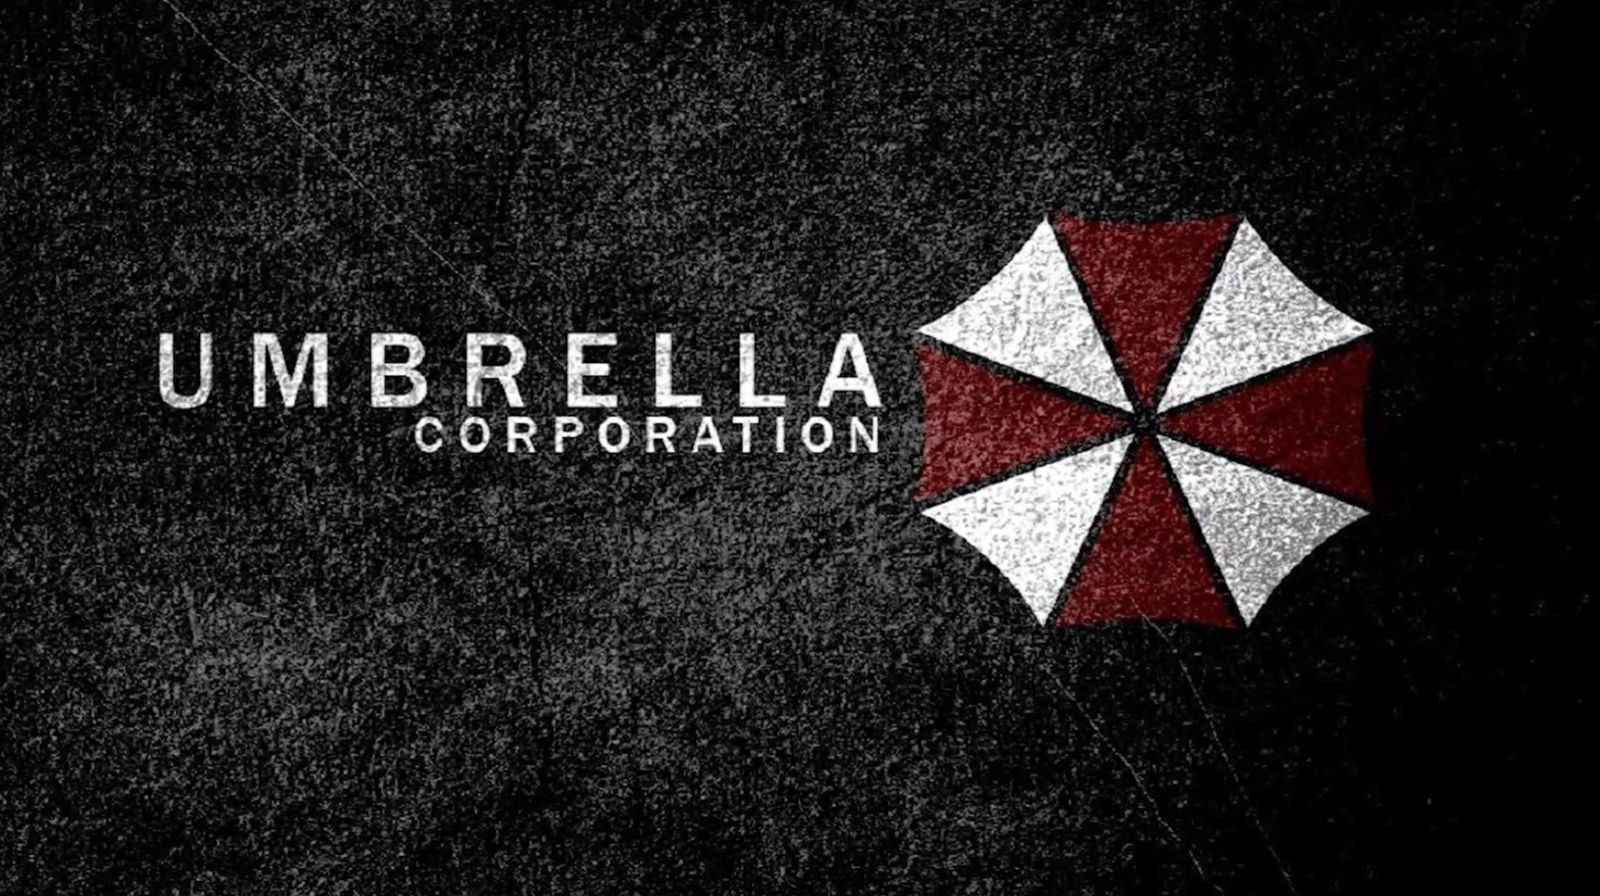 6 Templar Symbol For The Umbrella Corp